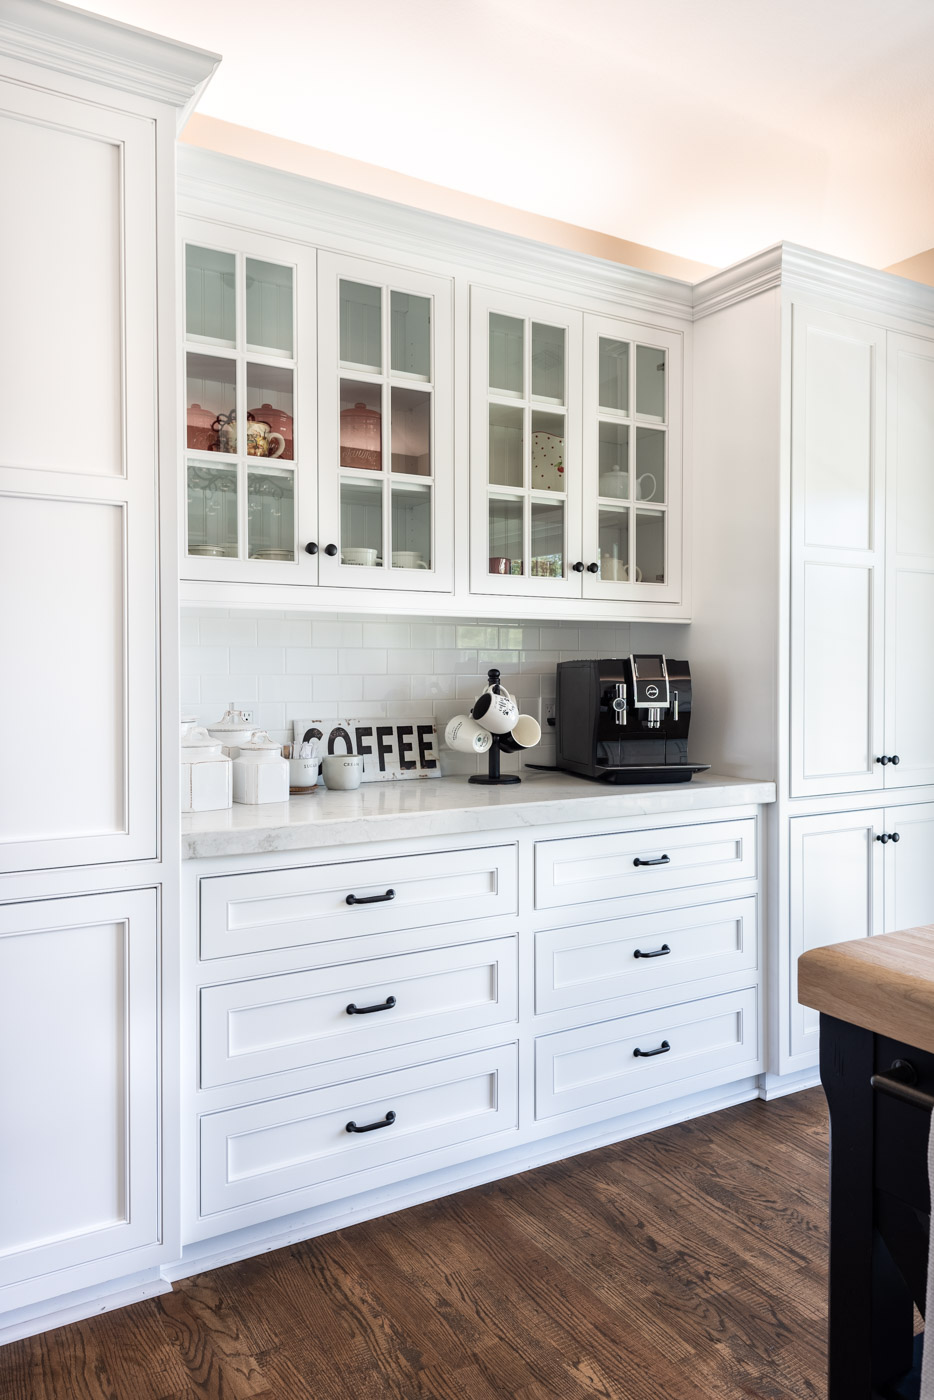 Transitional Country Cottage style kitchen with white recessed panel painted cabinets coffee bar